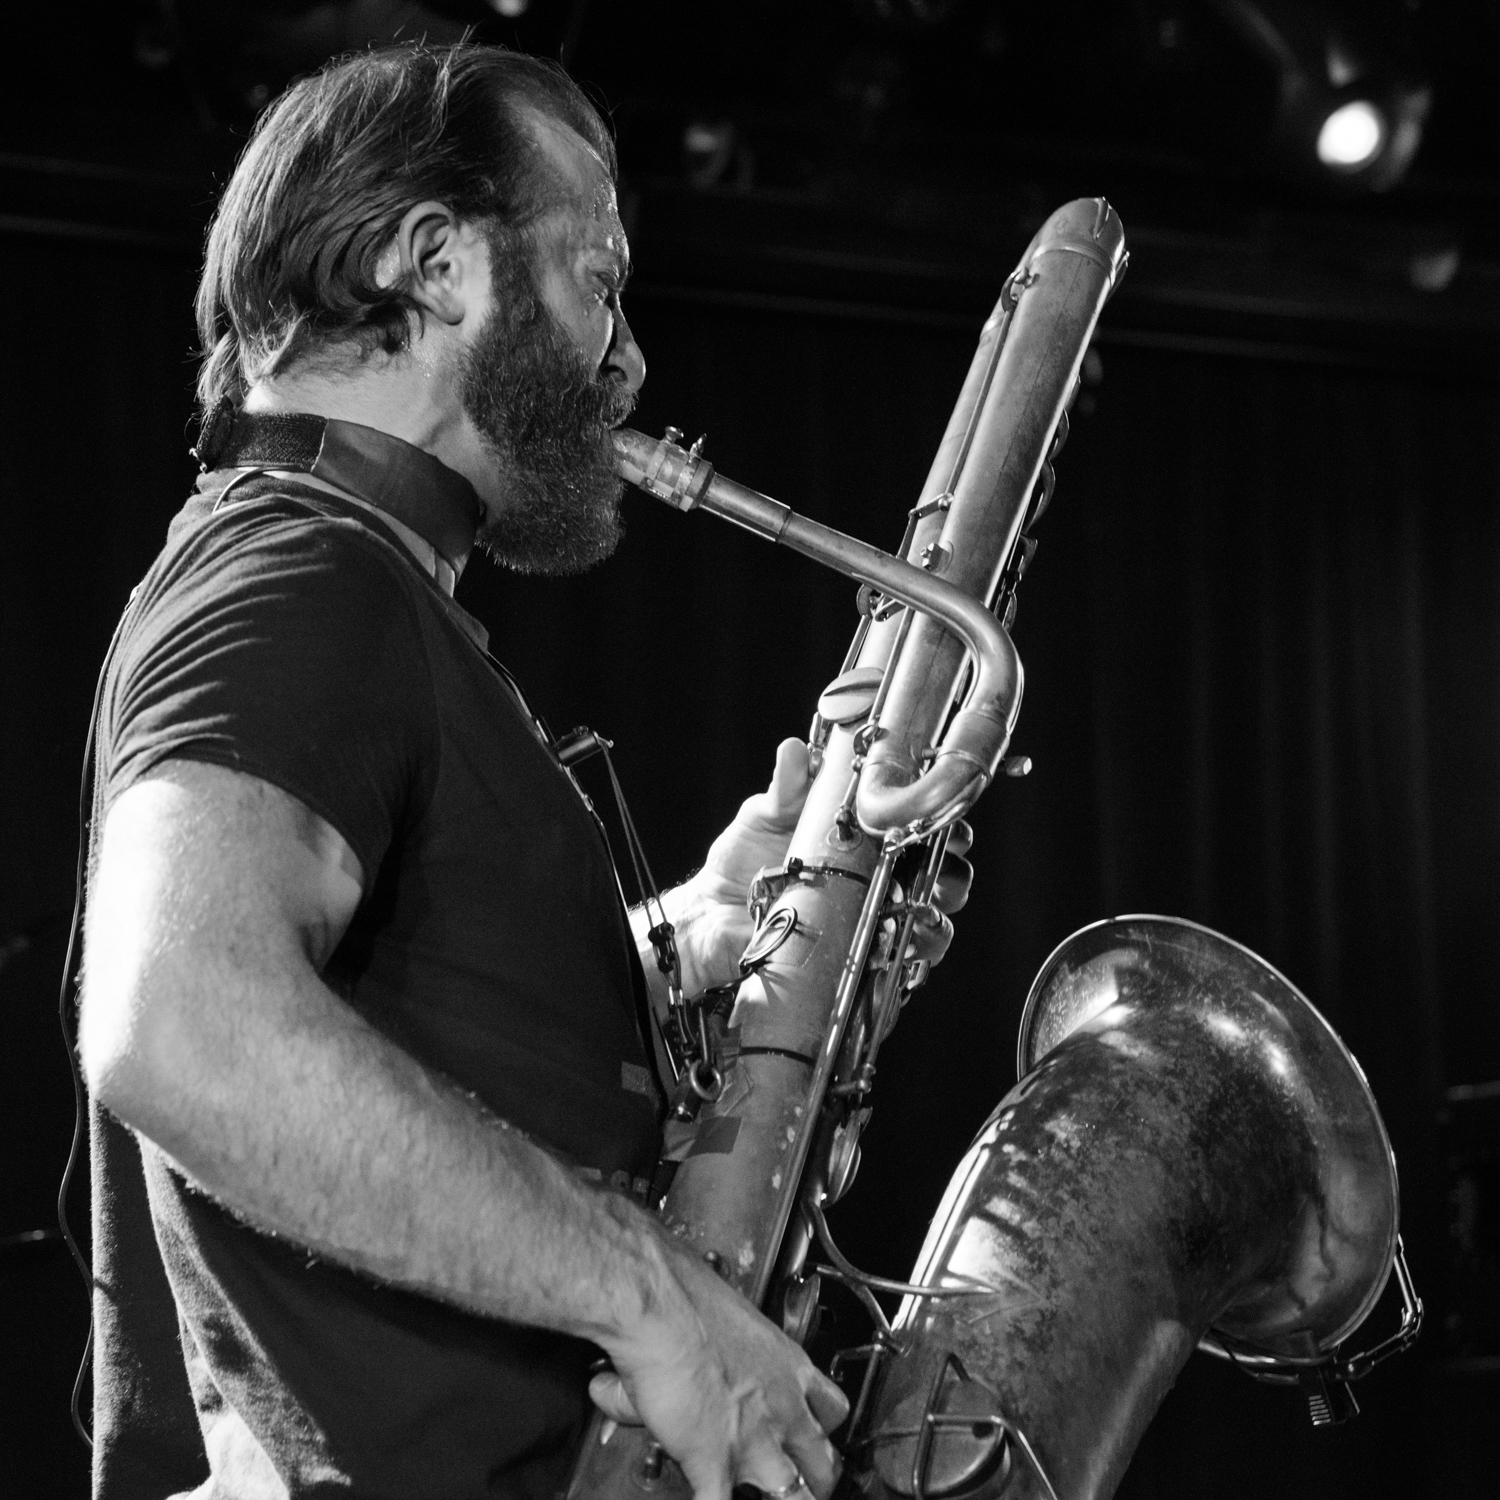 Colin Stetson on saxophone, performing at (Le) Poisson Rouge on Wednesday night, January 13.